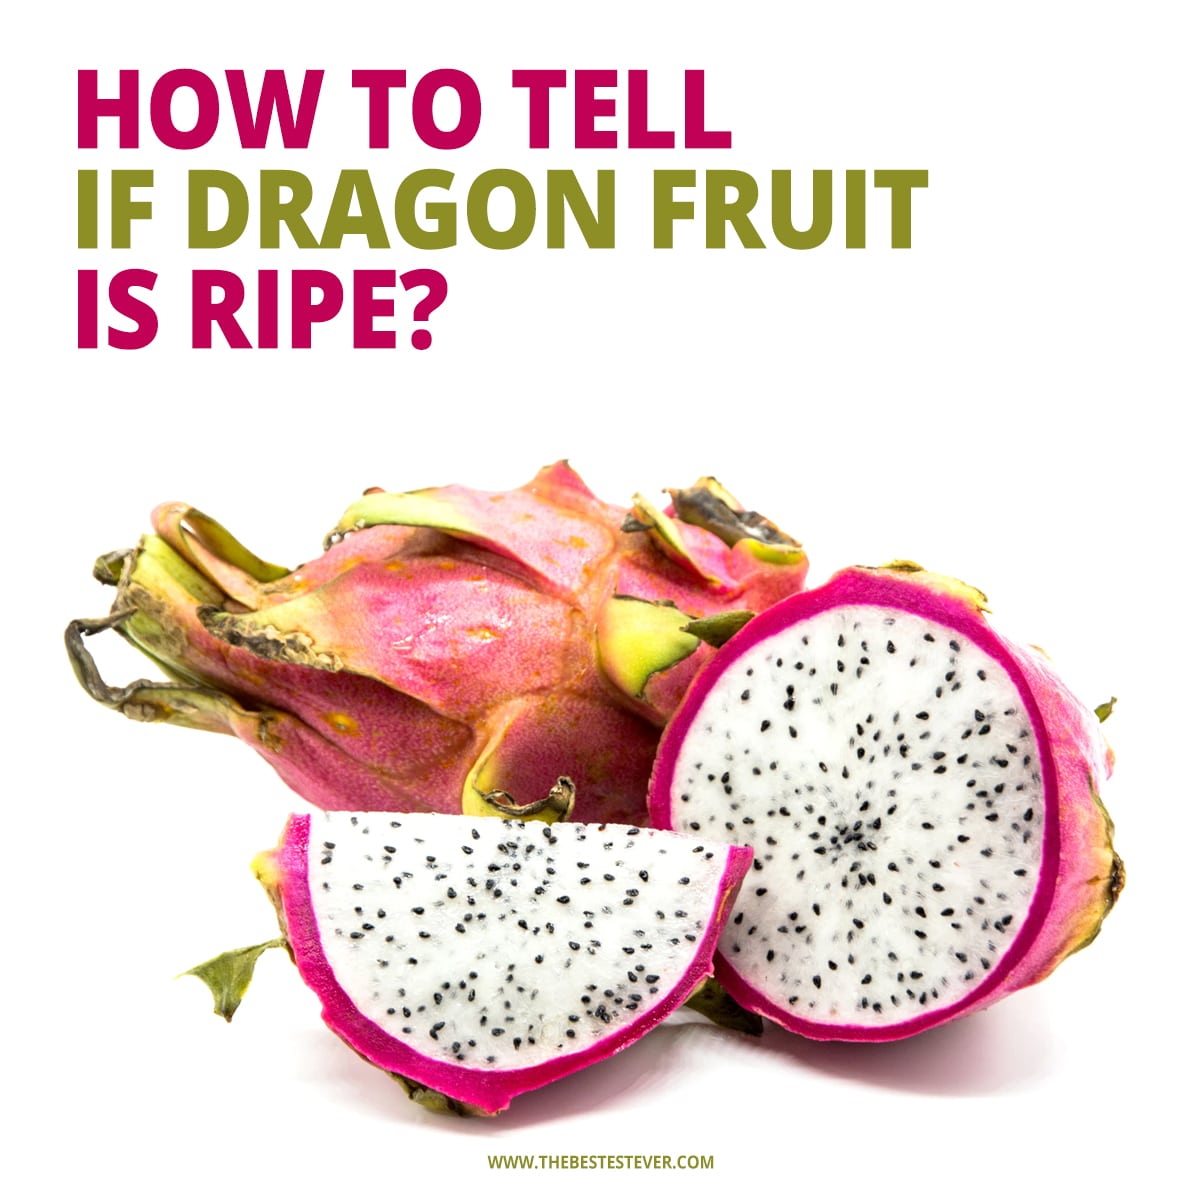 how to tell if  dragon fruit is ripe?